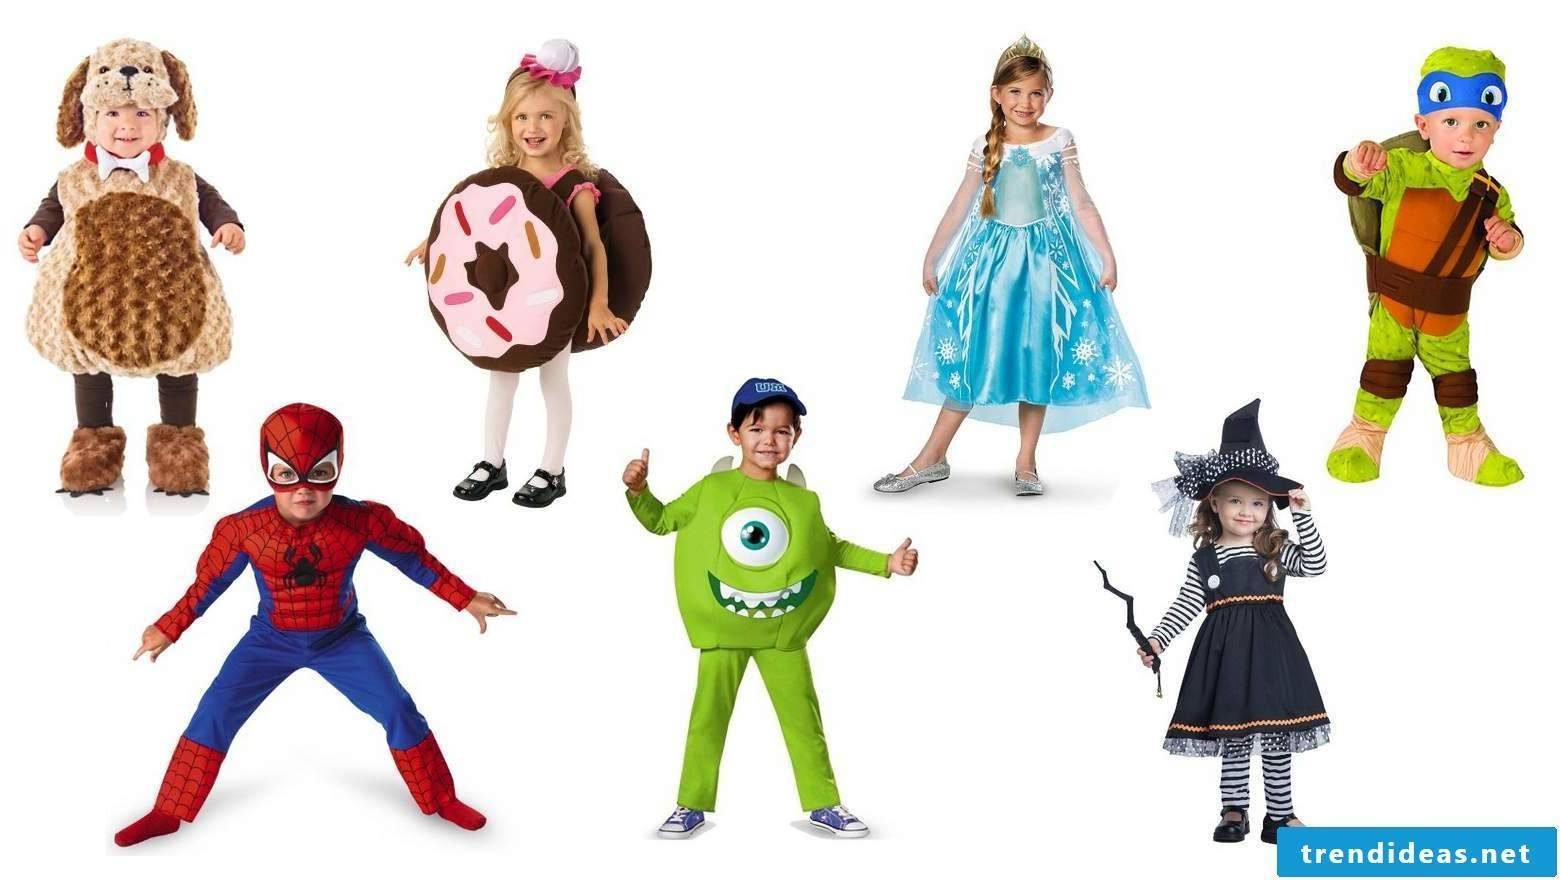 Great kids costumes for Halloween